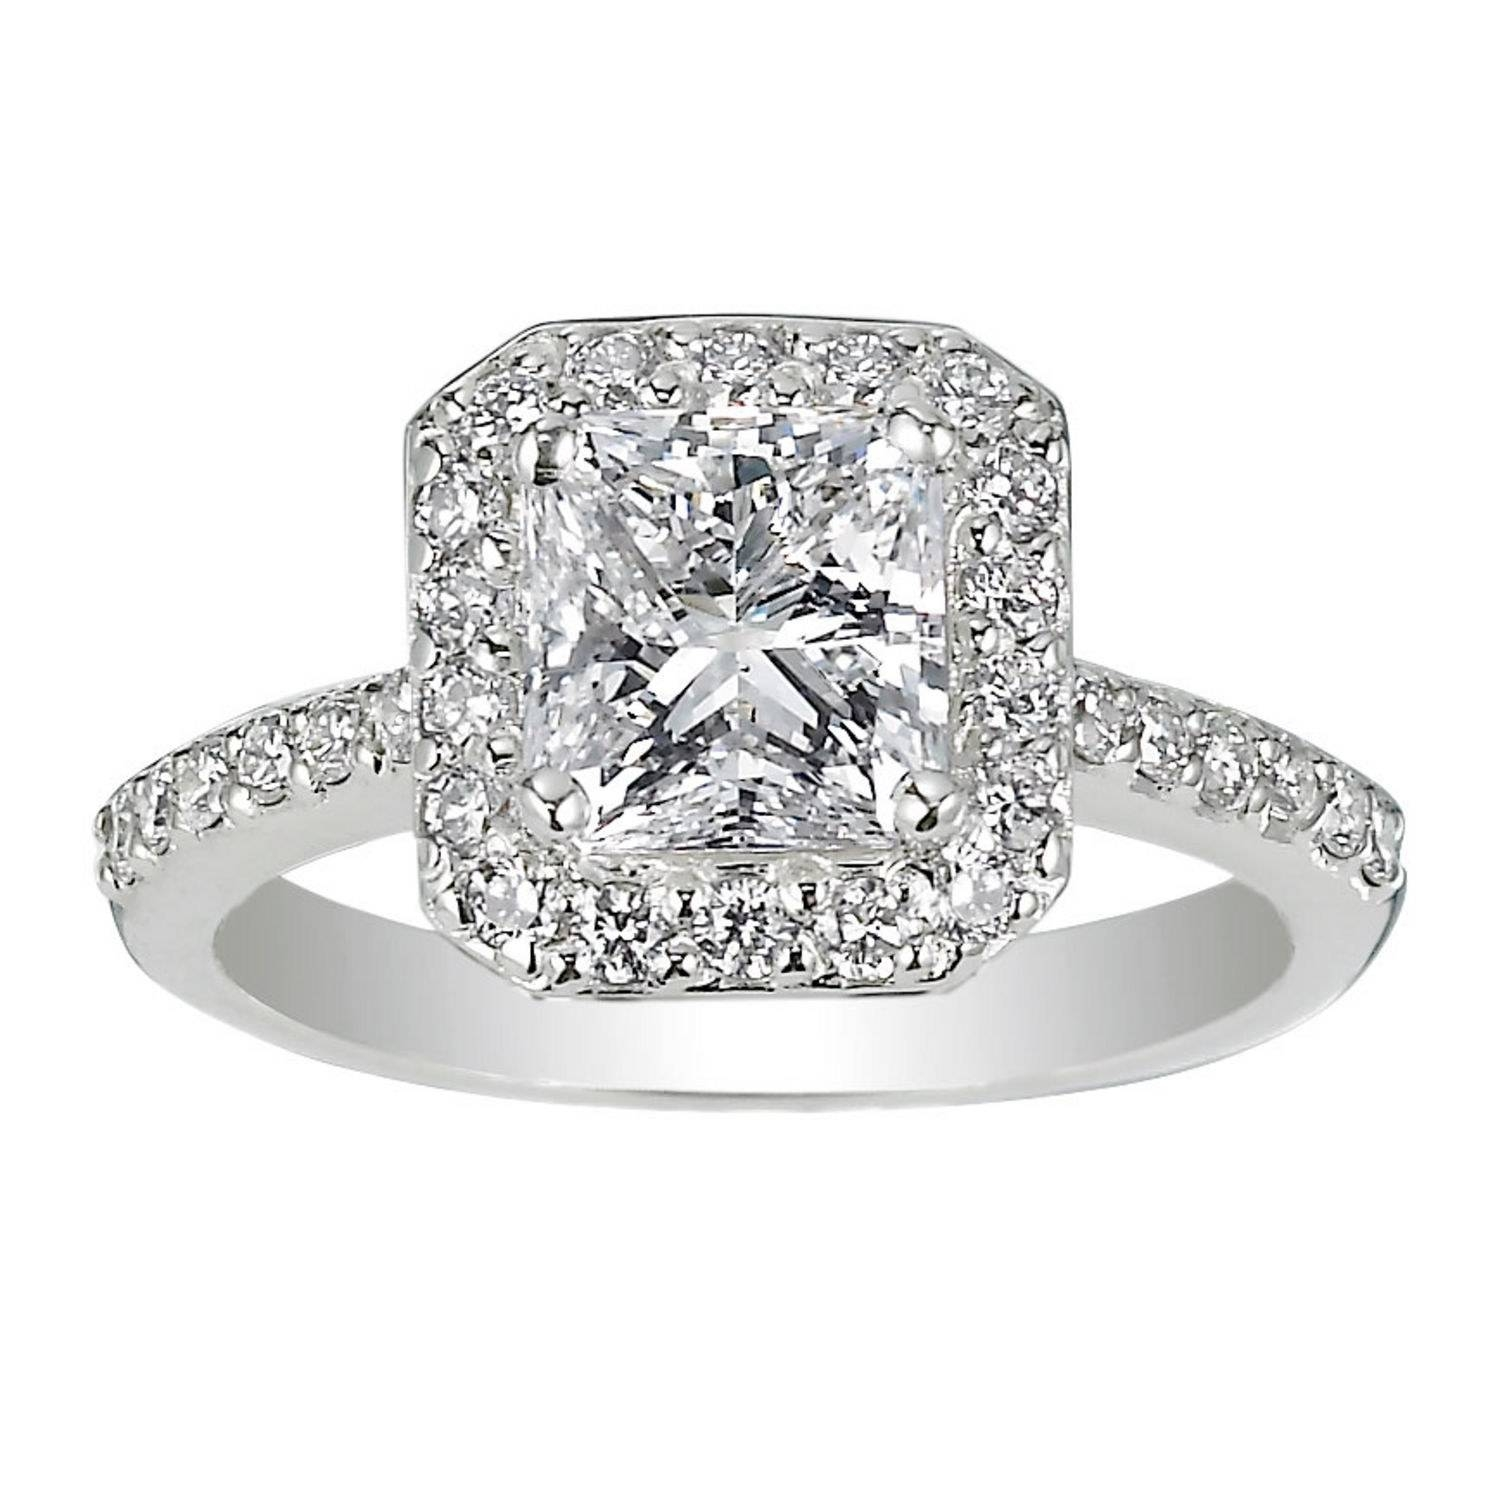 62 Diamond Engagement Rings Under $5,000 | Glamour Within Womans Engagement Rings (View 7 of 15)